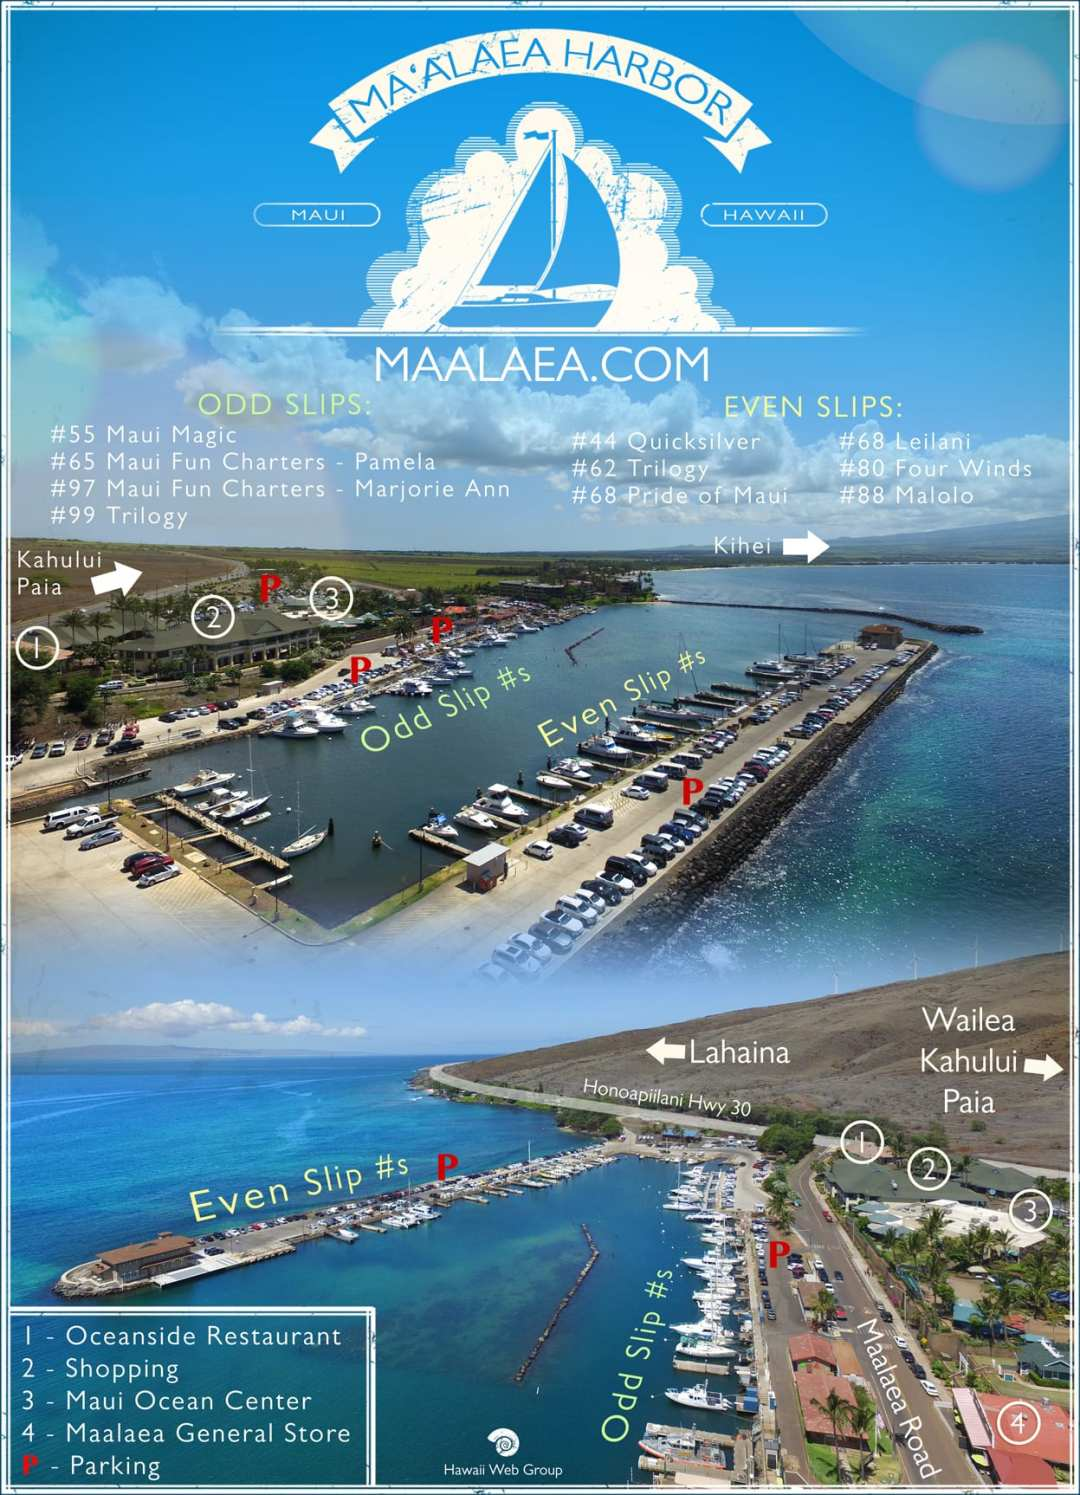 Maalaea Harbor Map